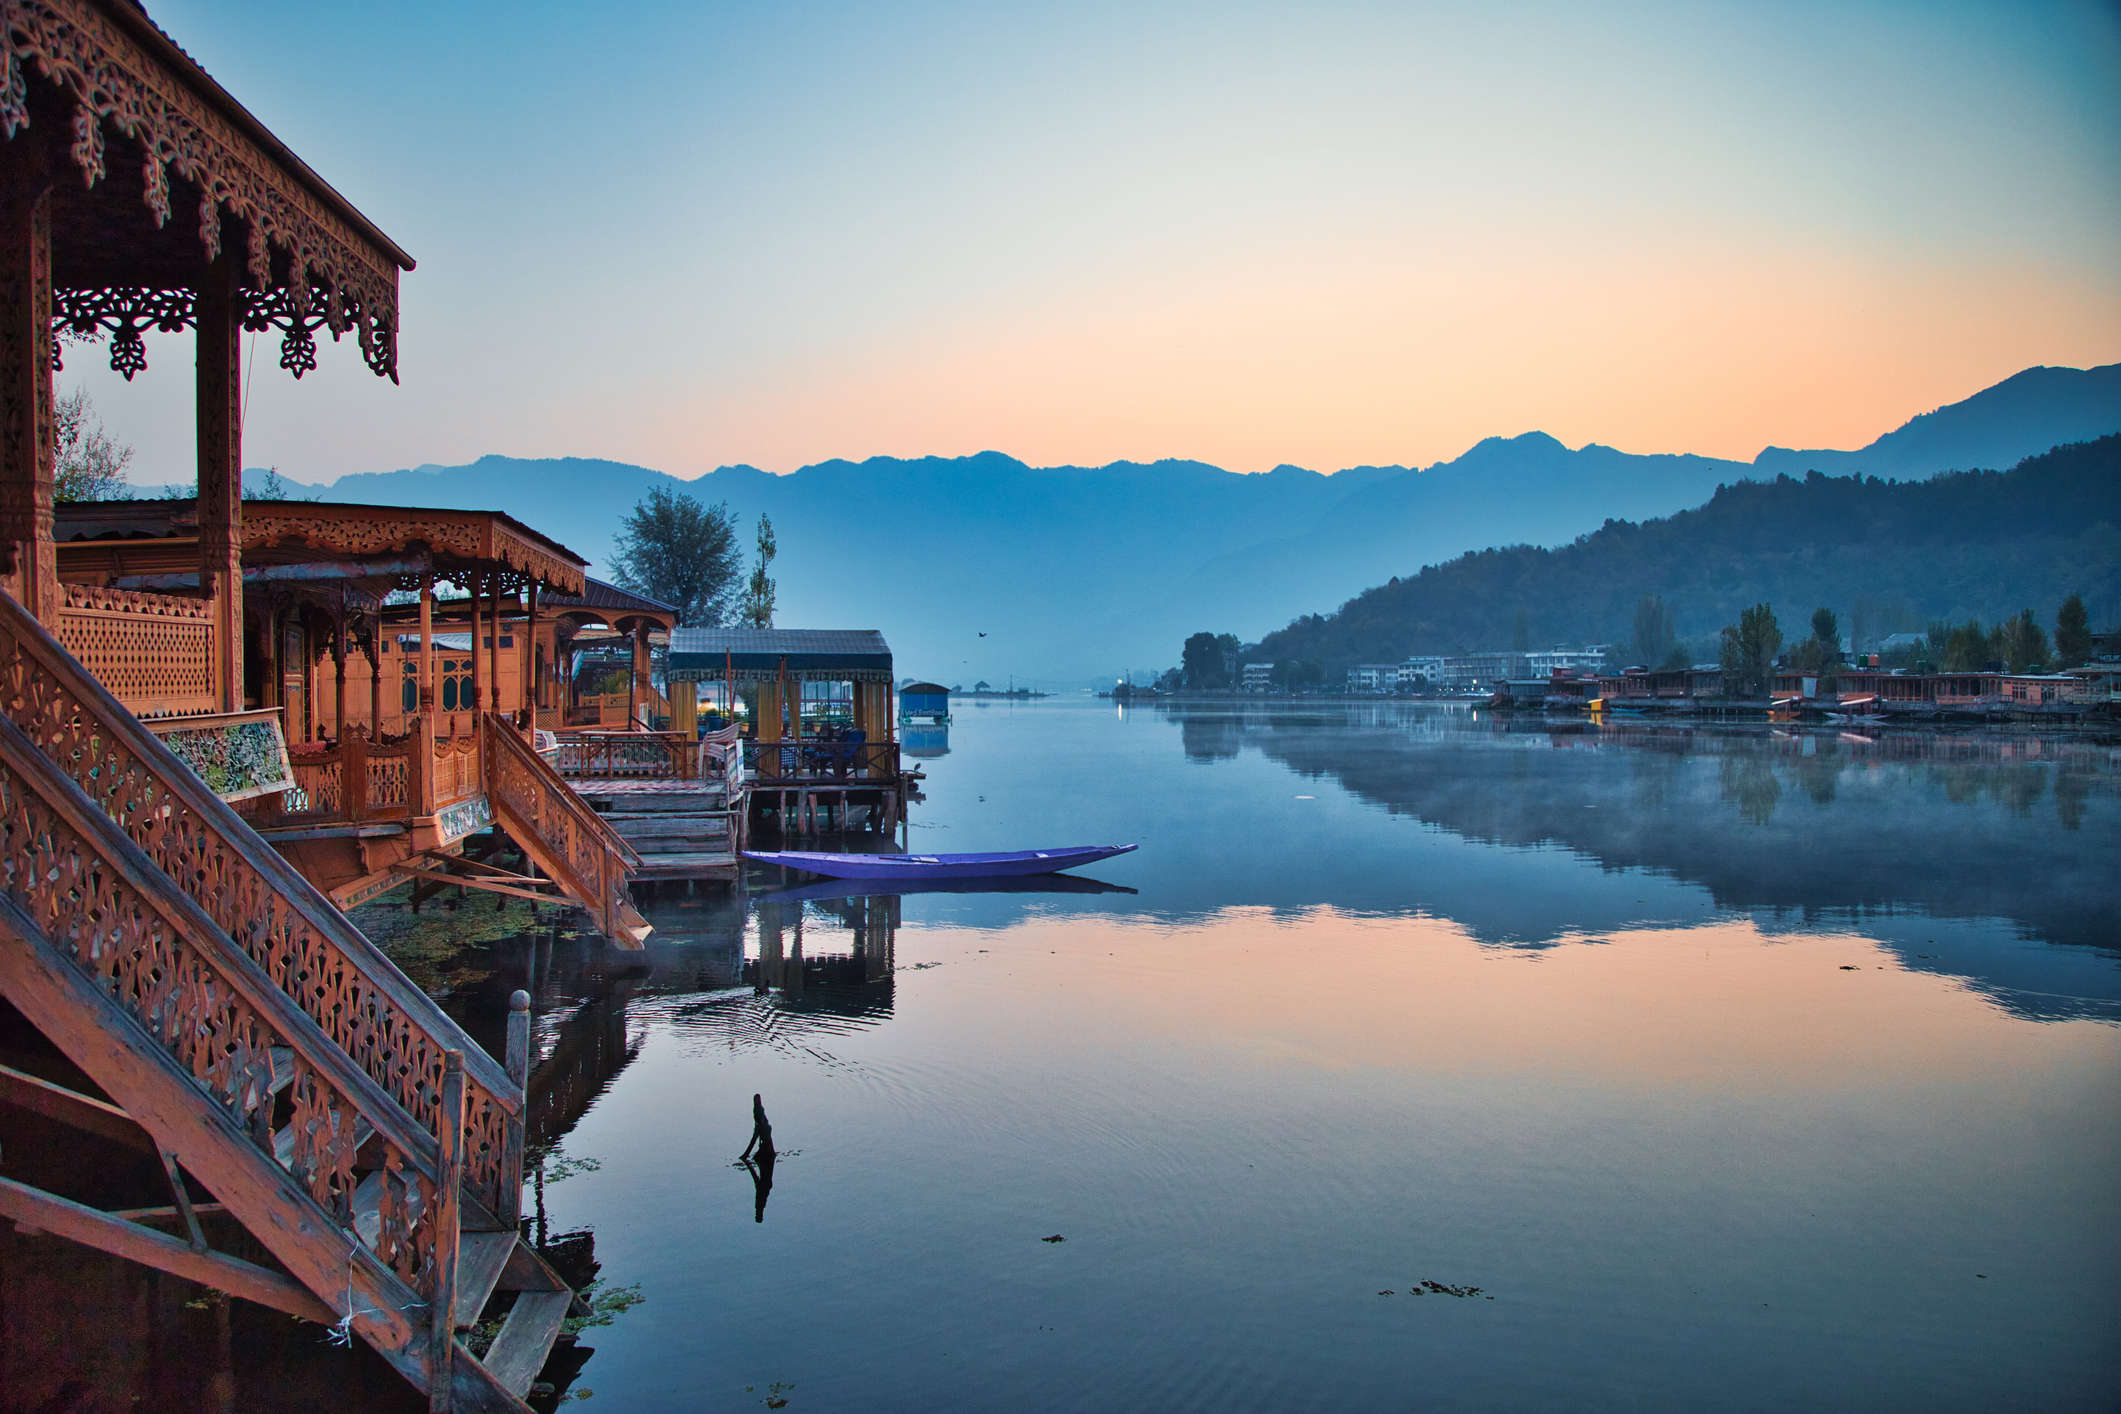 kashmir to get a boost in tourism with direct, evening flights | times of india travel